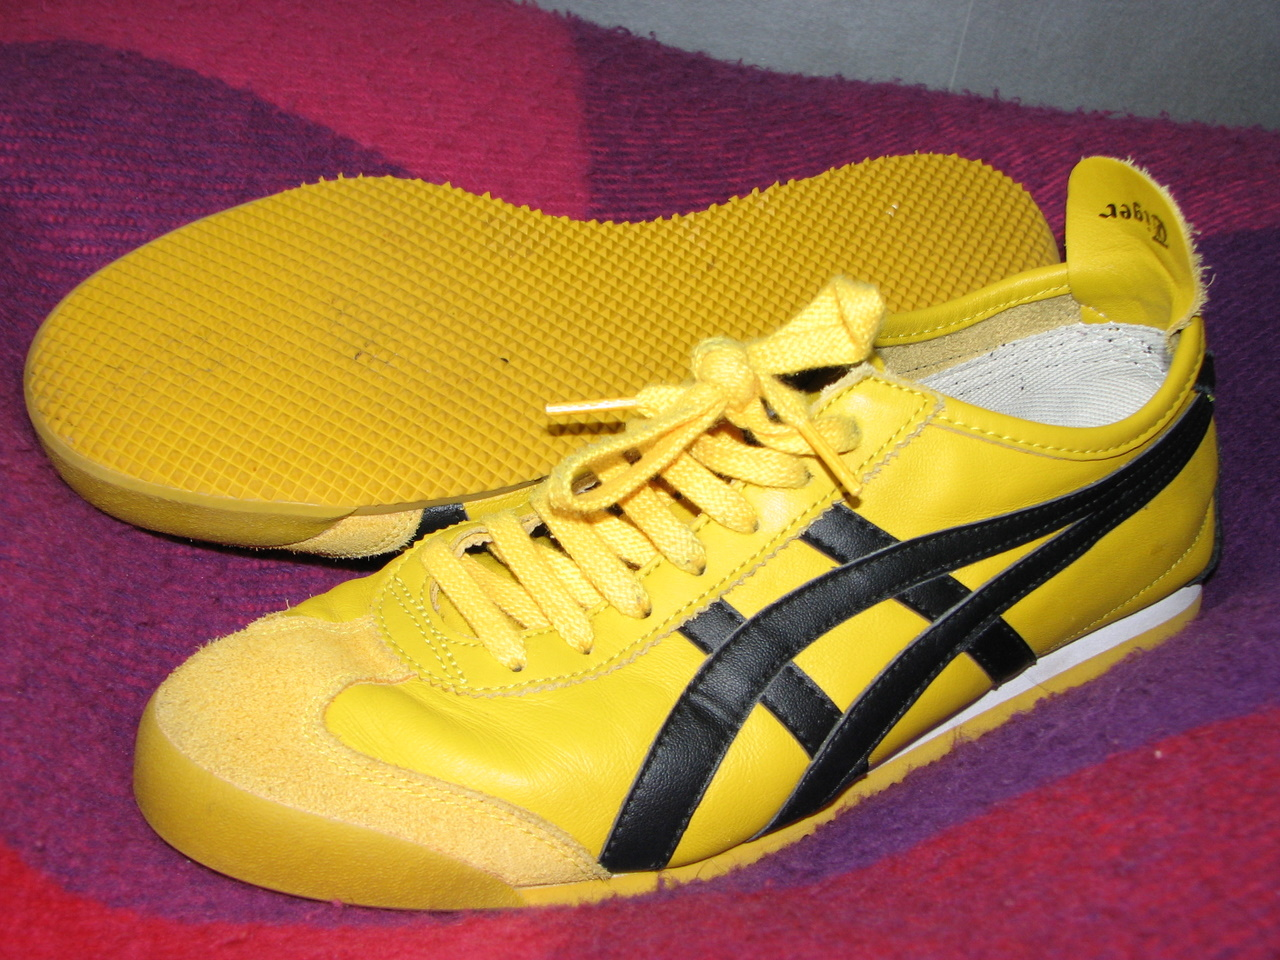 tsx7wdja authentic onitsuka tiger yellow. Black Bedroom Furniture Sets. Home Design Ideas